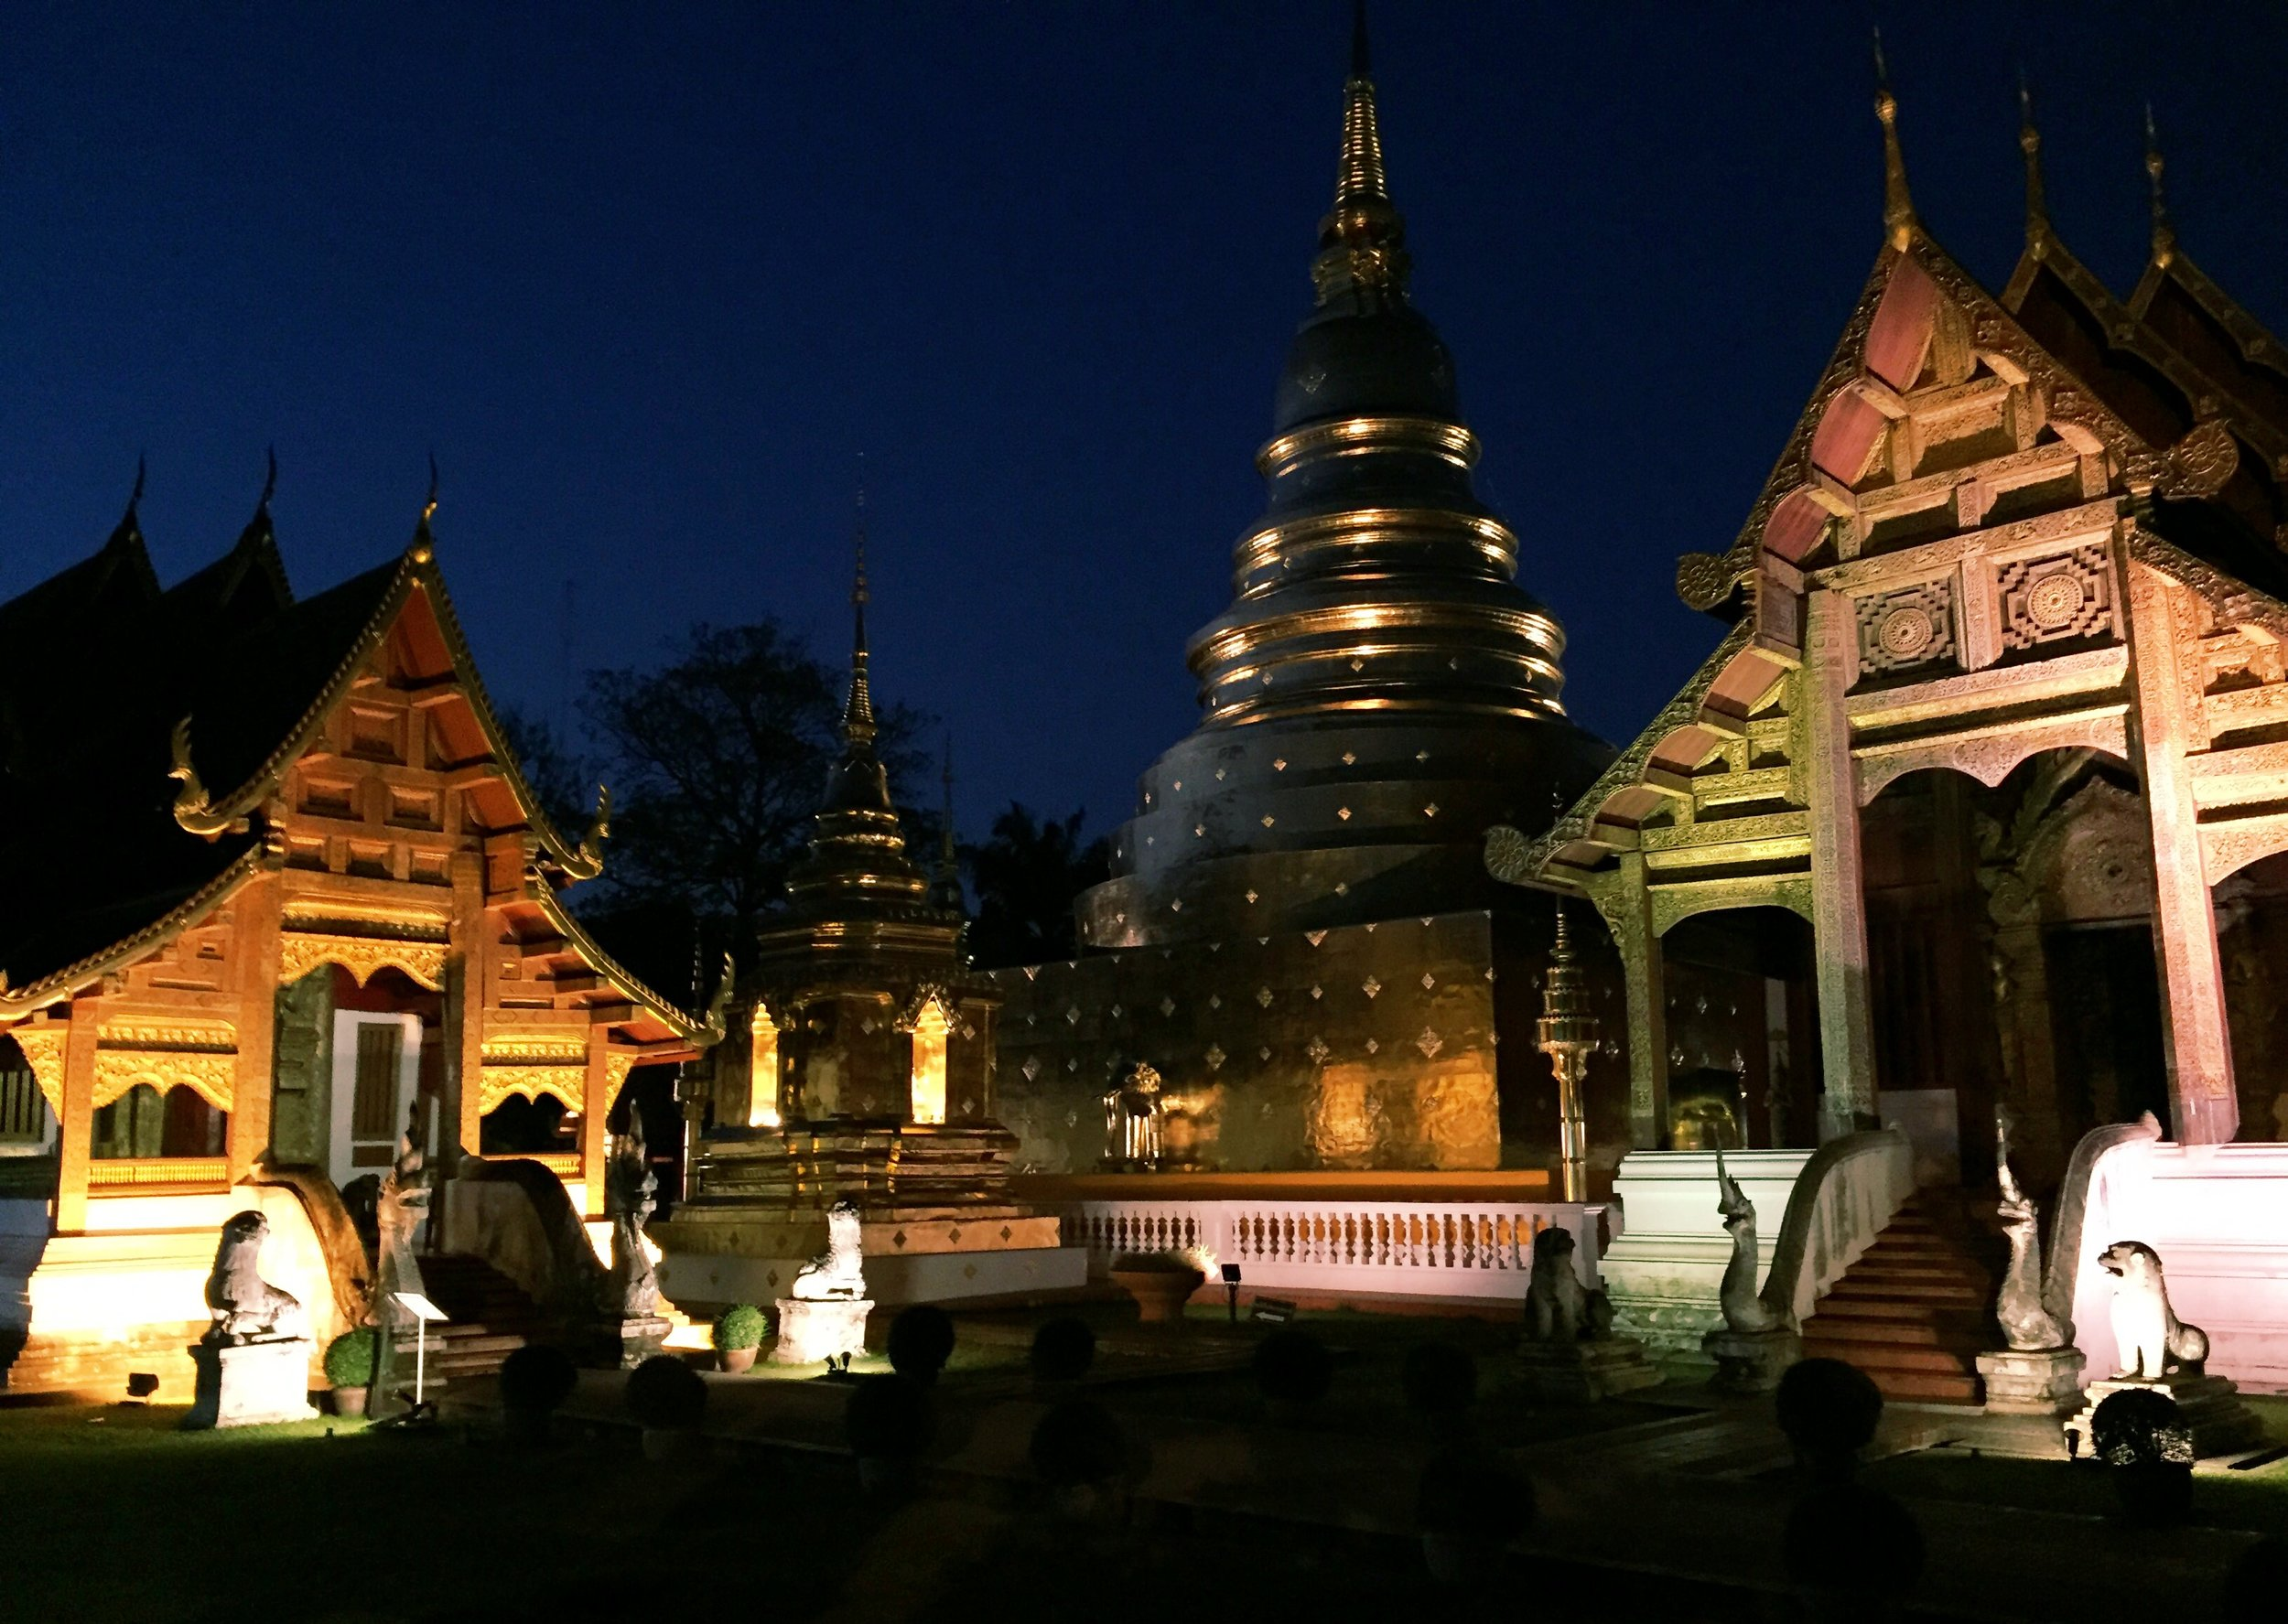 Wat Phra Singh at Night